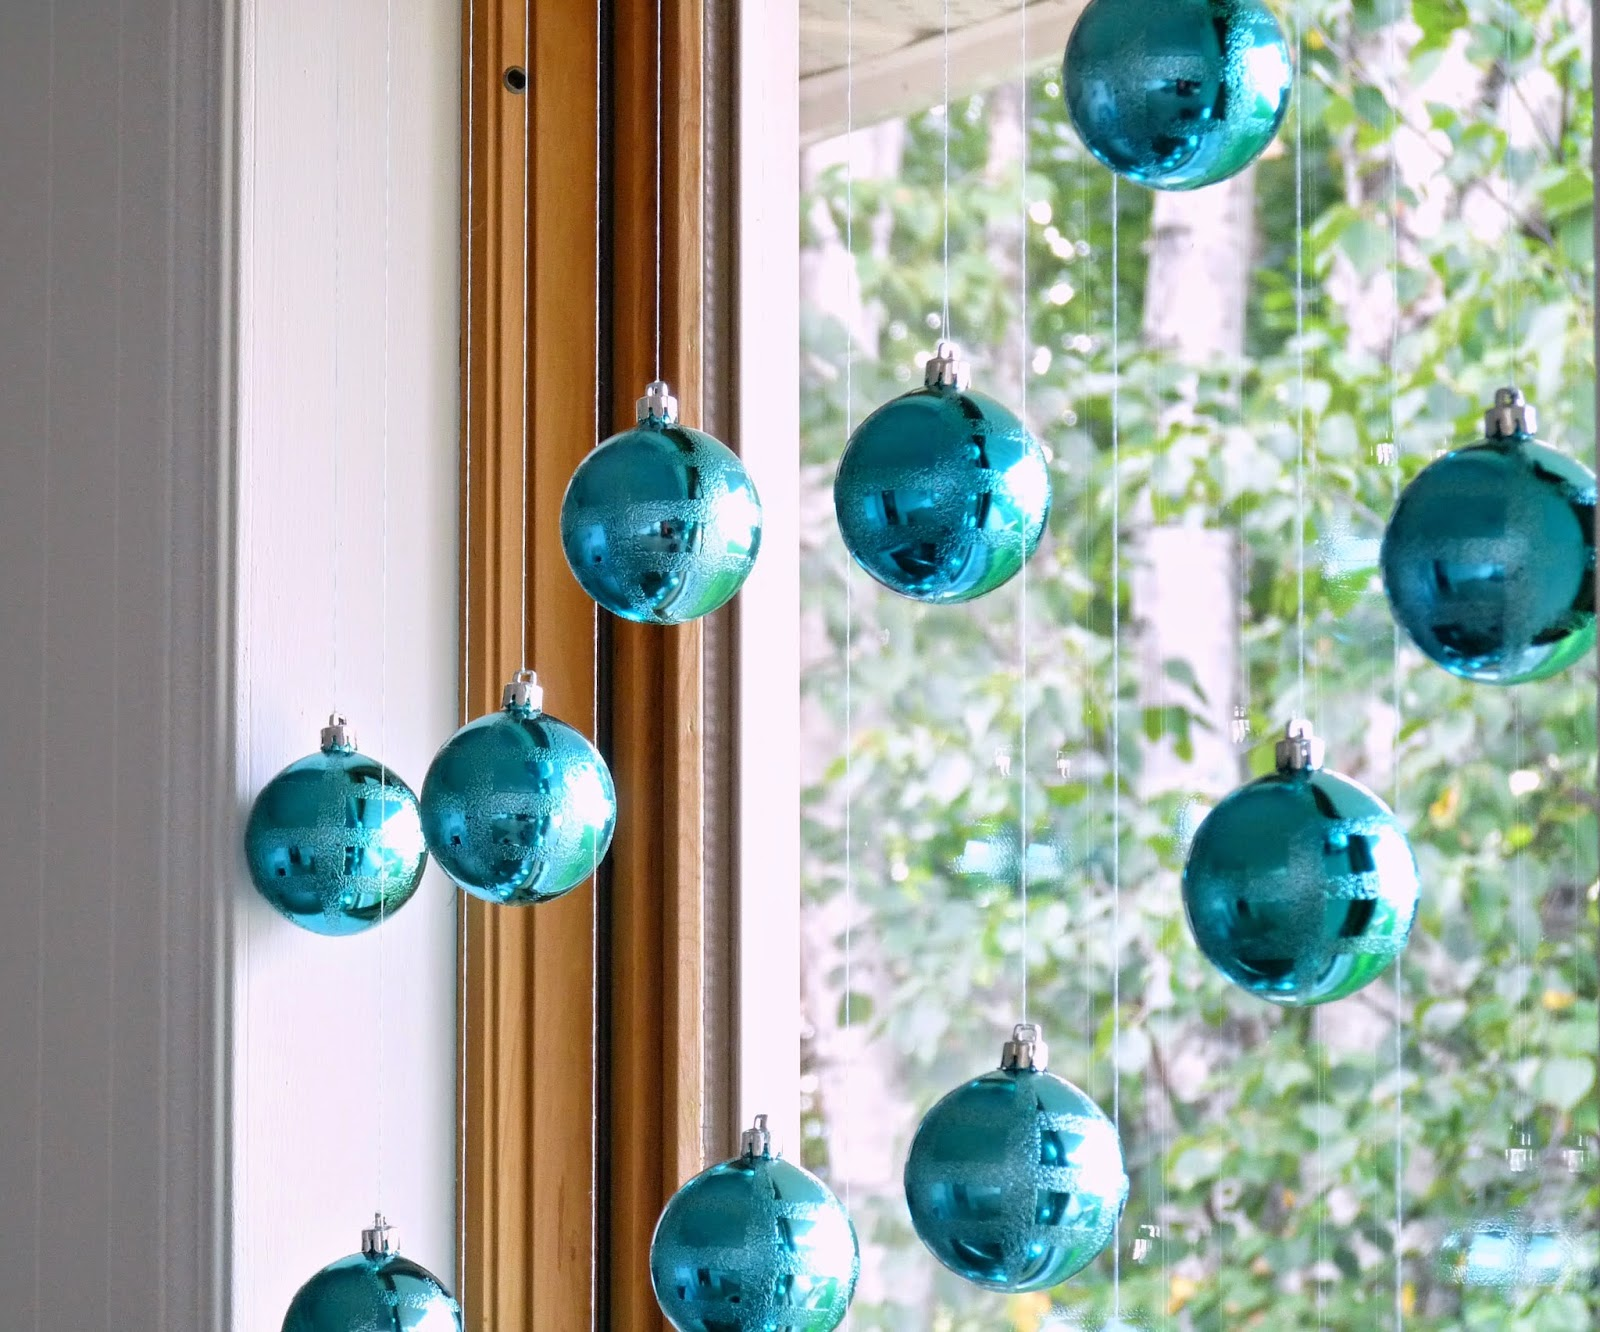 aqua ornaments in window - Aqua Christmas Decorations